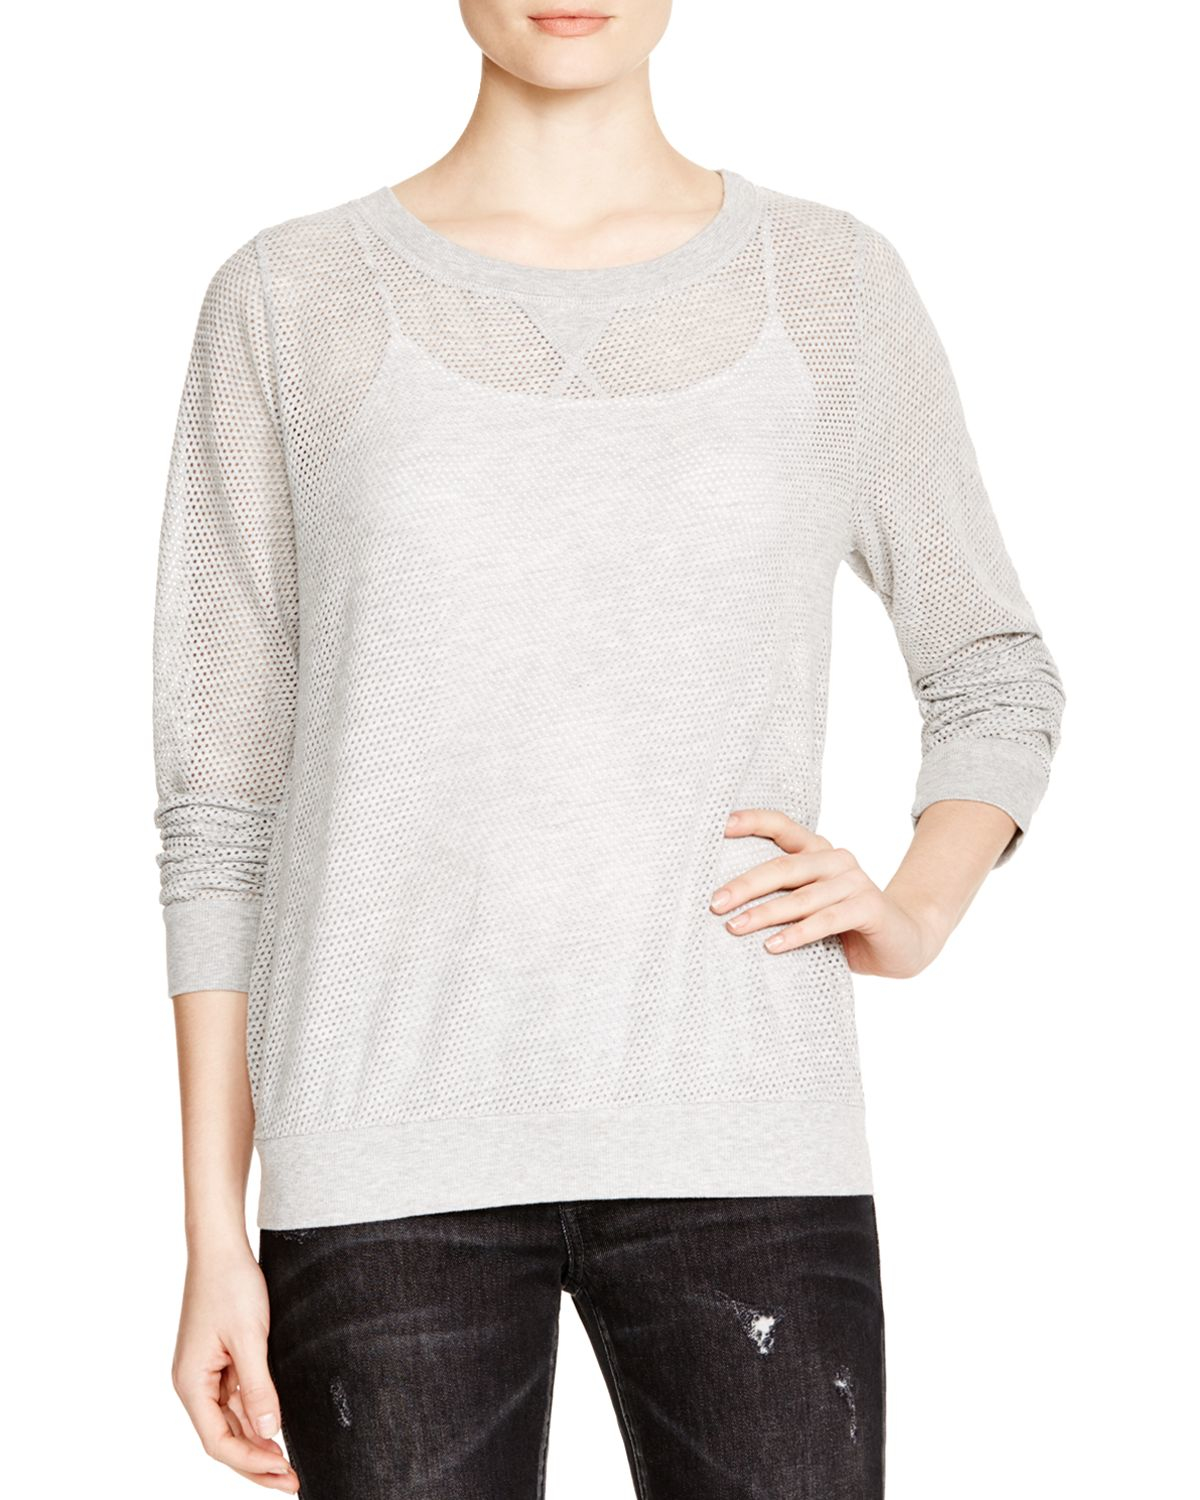 Michael stars mesh sweatshirt in gray heather grey lyst for Michael stars t shirts on sale